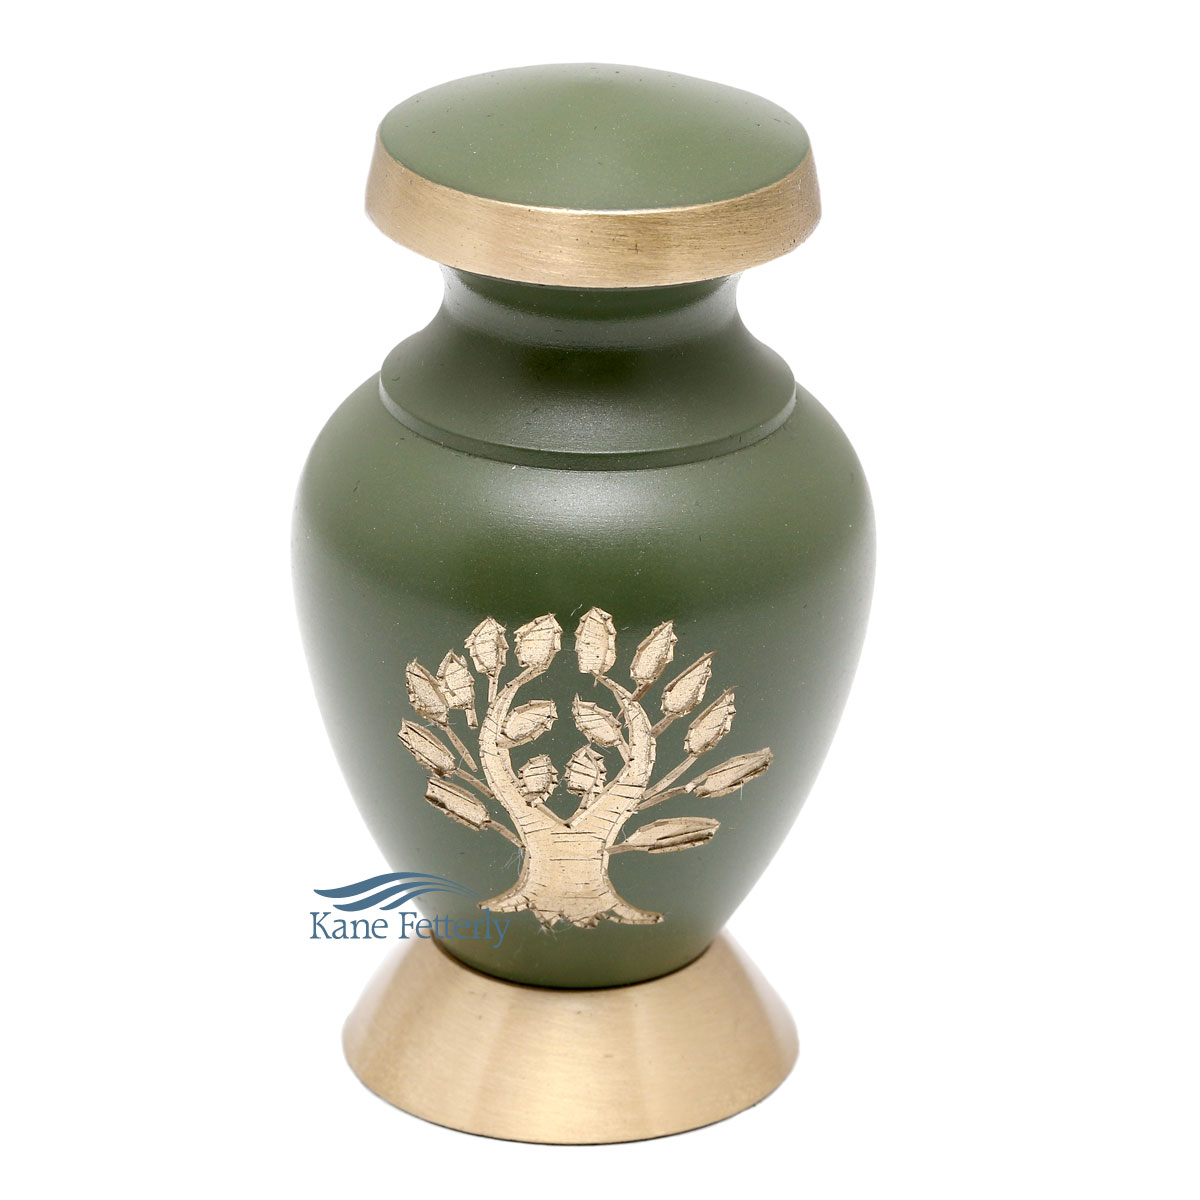 U86459K Miniature urn with tree